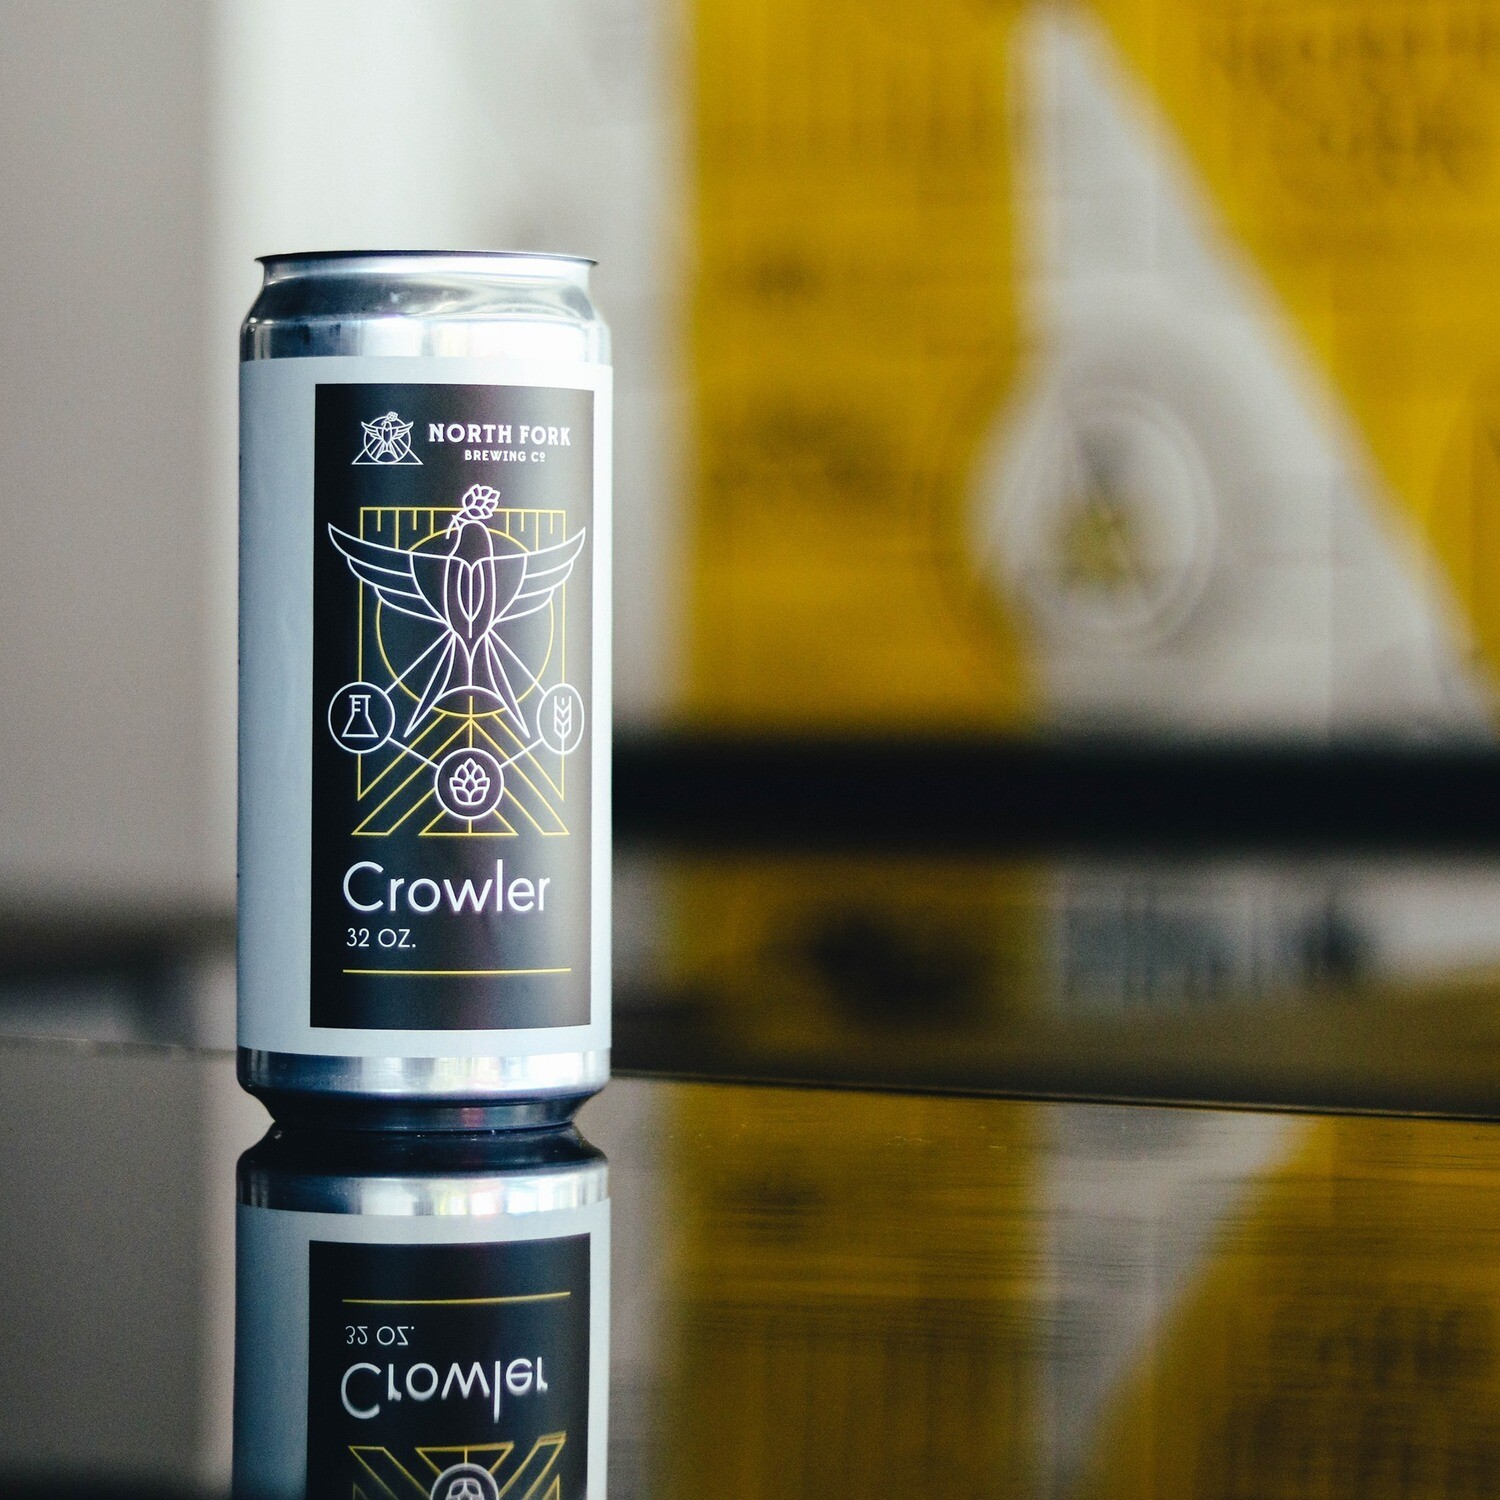 Back to the Lacto with Mango and Guava: Crowler